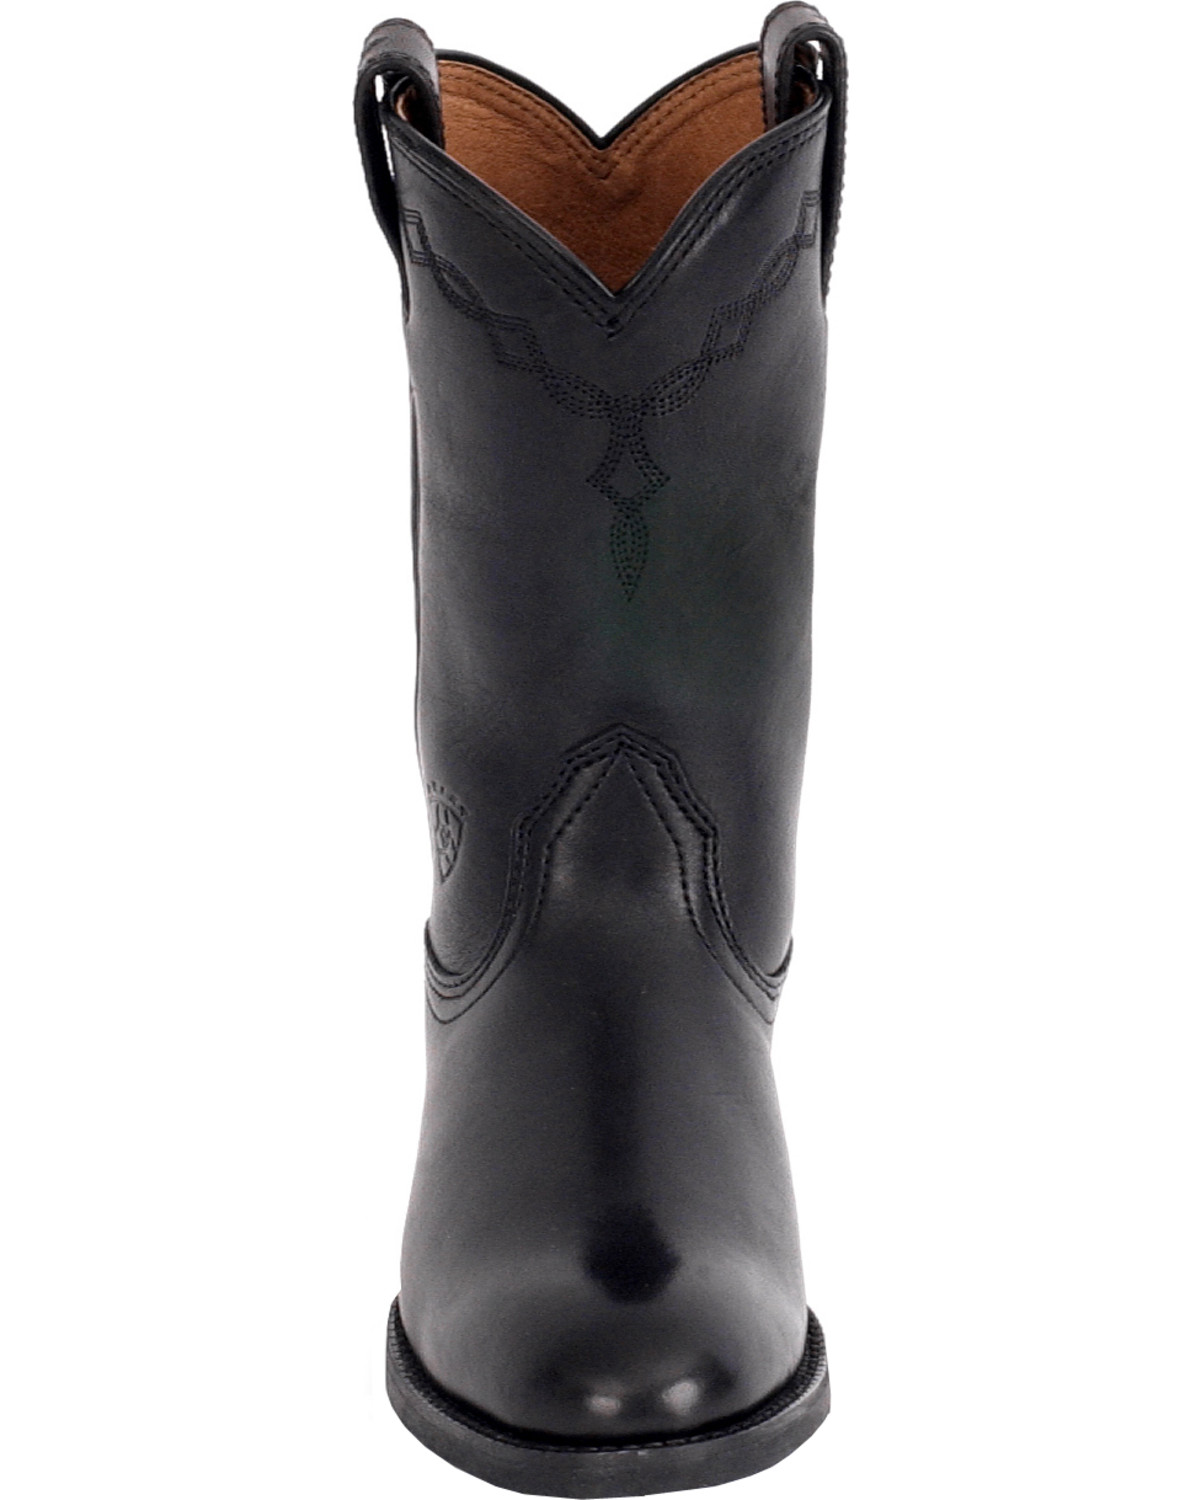 Women's Ariat Heritage Roper Boots - Country Outfitter